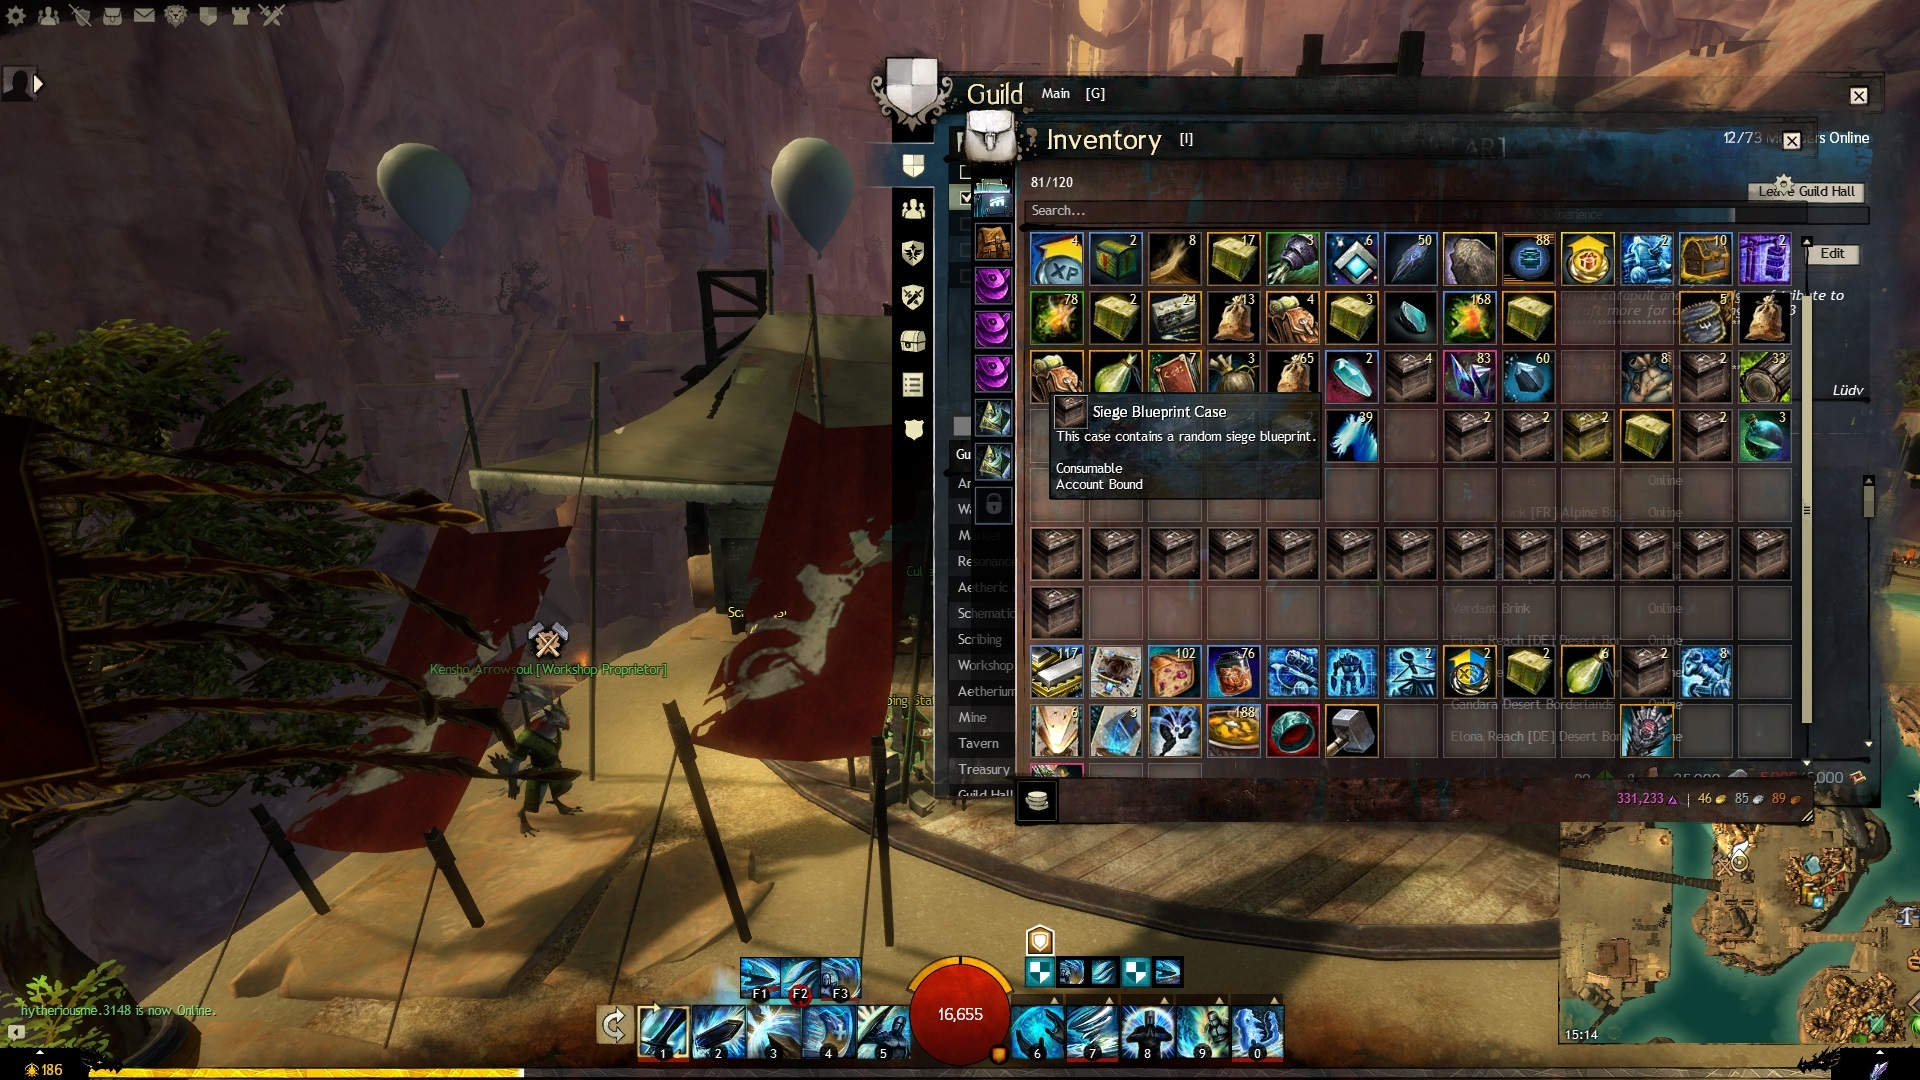 Guild wars 2 forum guild wars 2 discussion siege blueprints case cant be compacted in guild wars 2 discussion malvernweather Choice Image